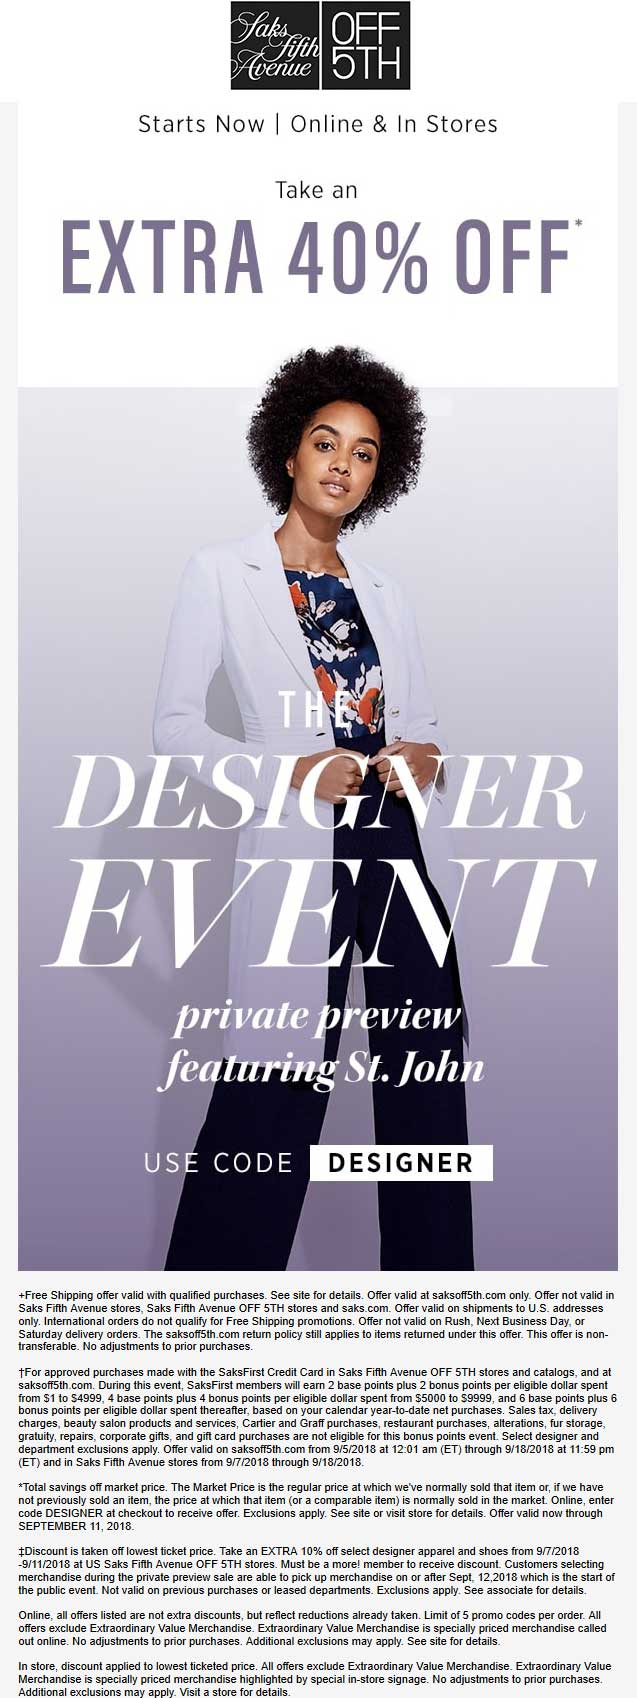 OFF 5TH Coupon June 2020 Extra 40% off at Saks Fifth Avenue OFF 5TH, or online via promo code DESIGNER